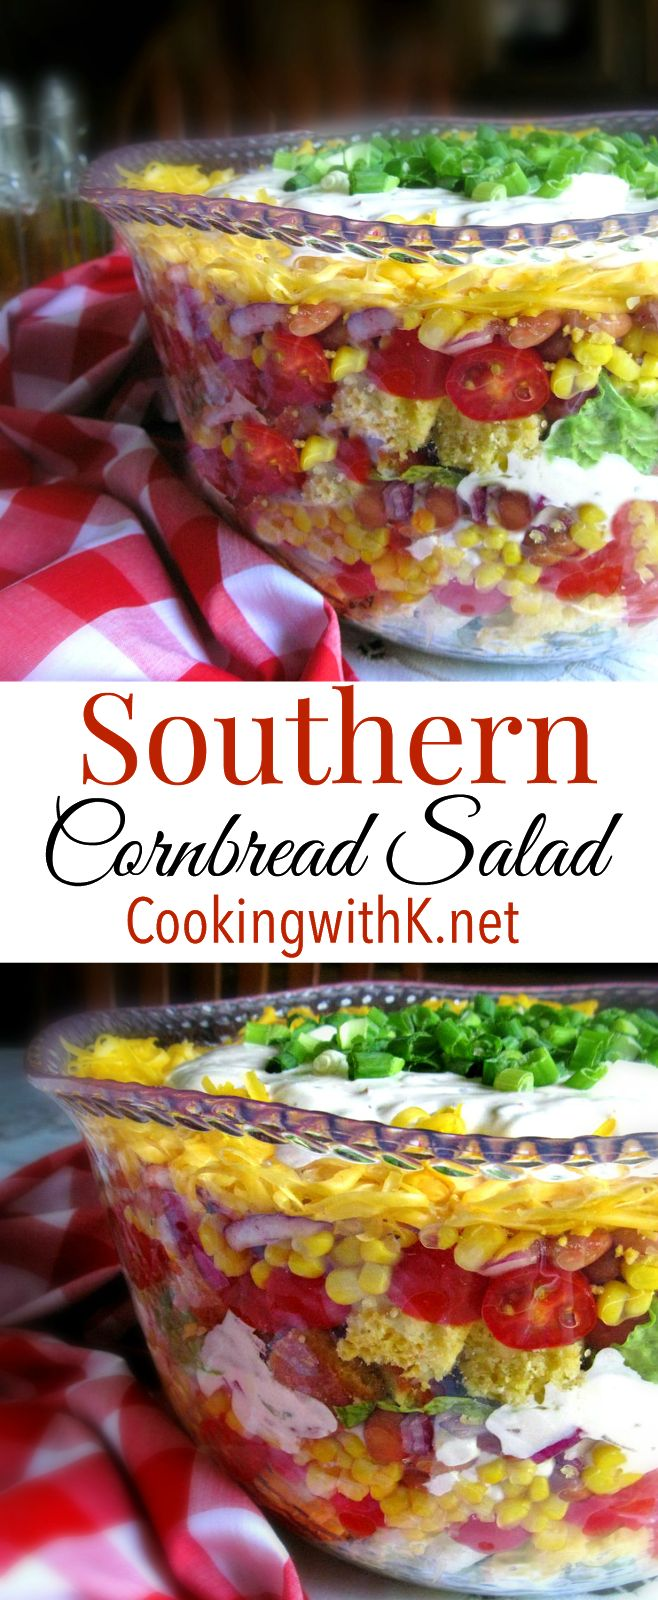 Cooking with K - Southern Kitchen Happenings: Southern Cornbread Salad